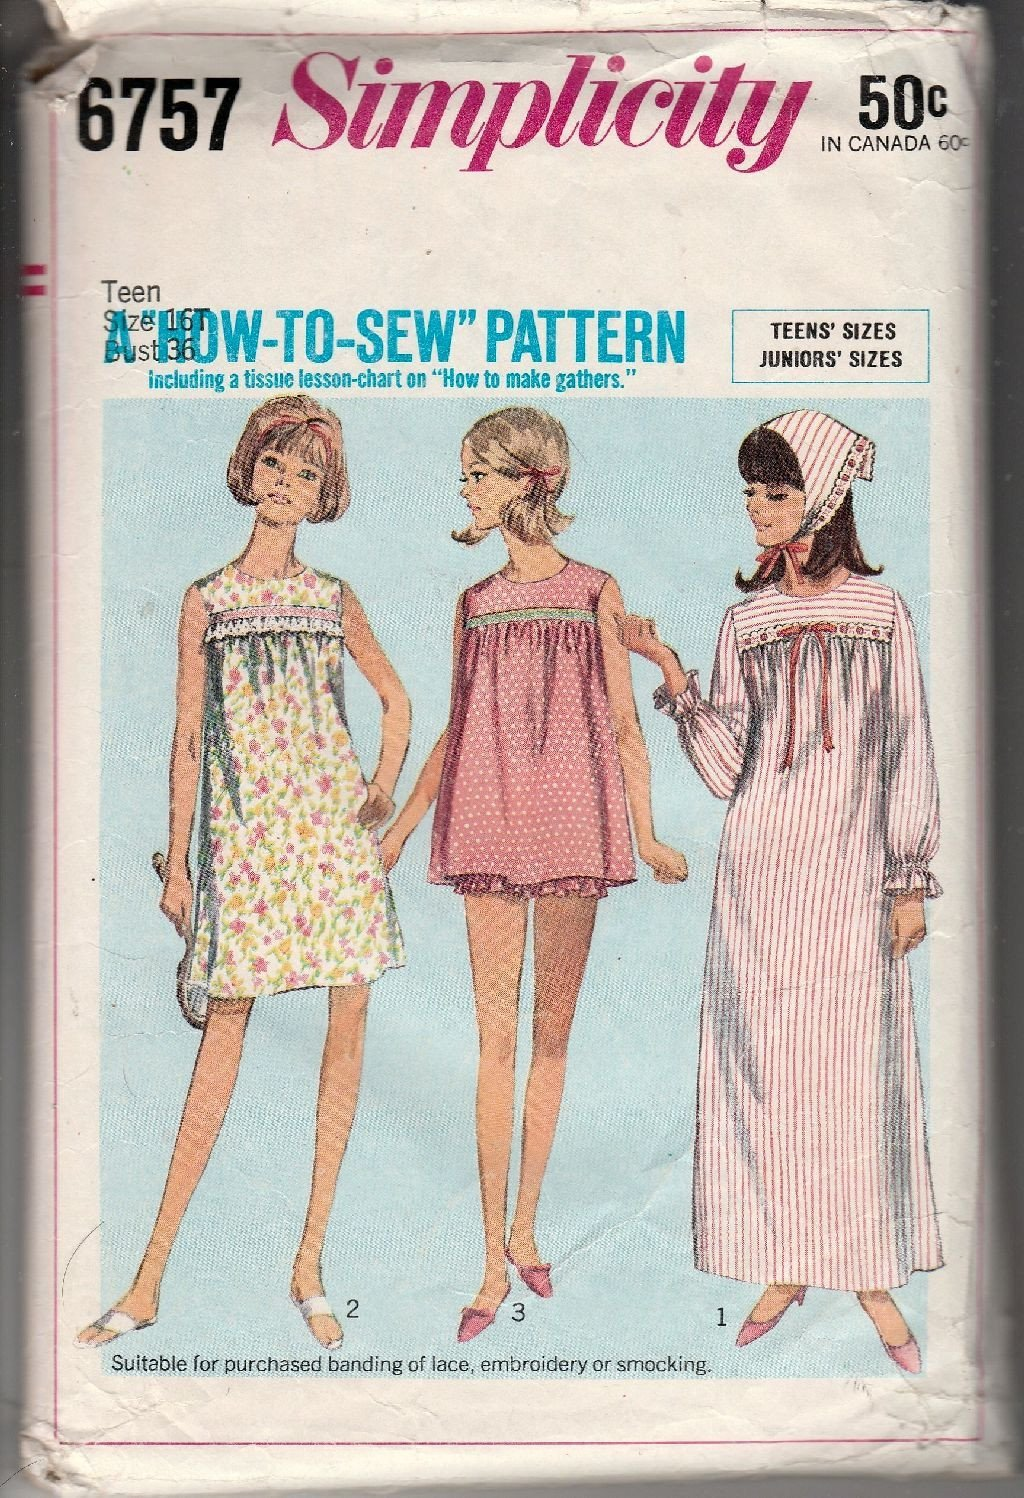 Simplicity 6757 Vintage 1960's Sewing Pattern Teen Girl Pajamas Baby Doll Nightgown - VintageStitching - Vintage Sewing Patterns